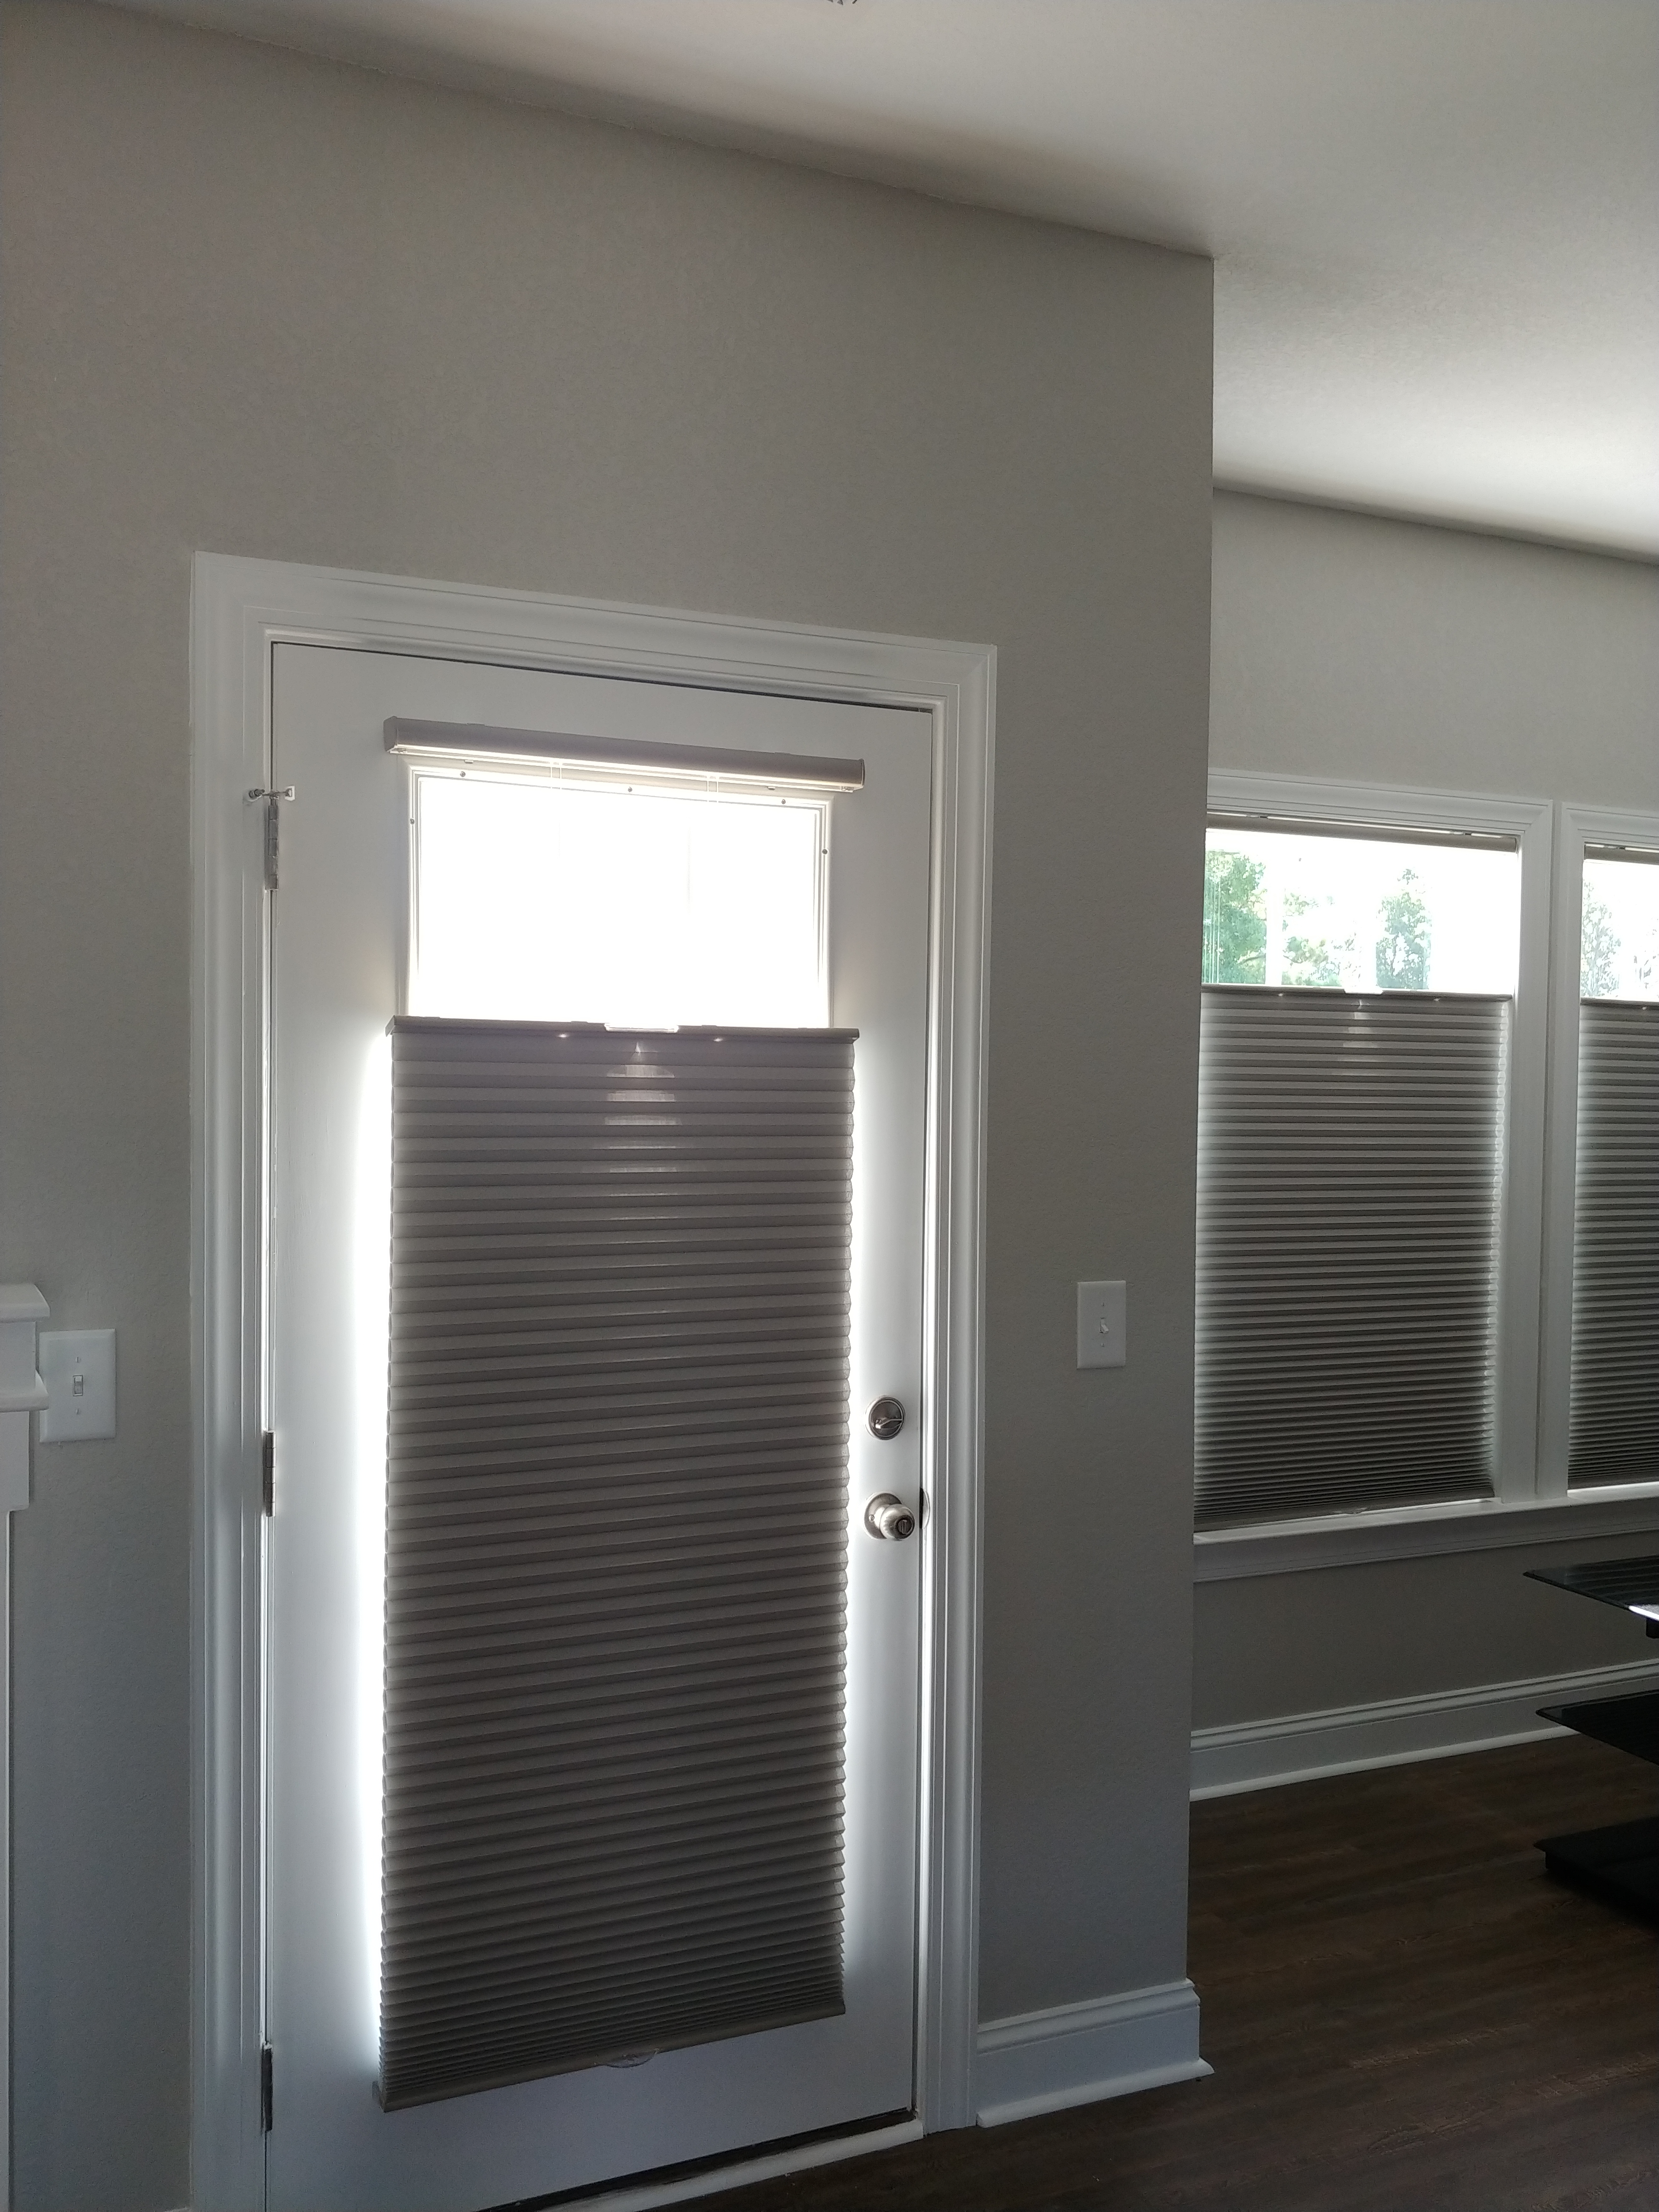 Cellular shades with top down